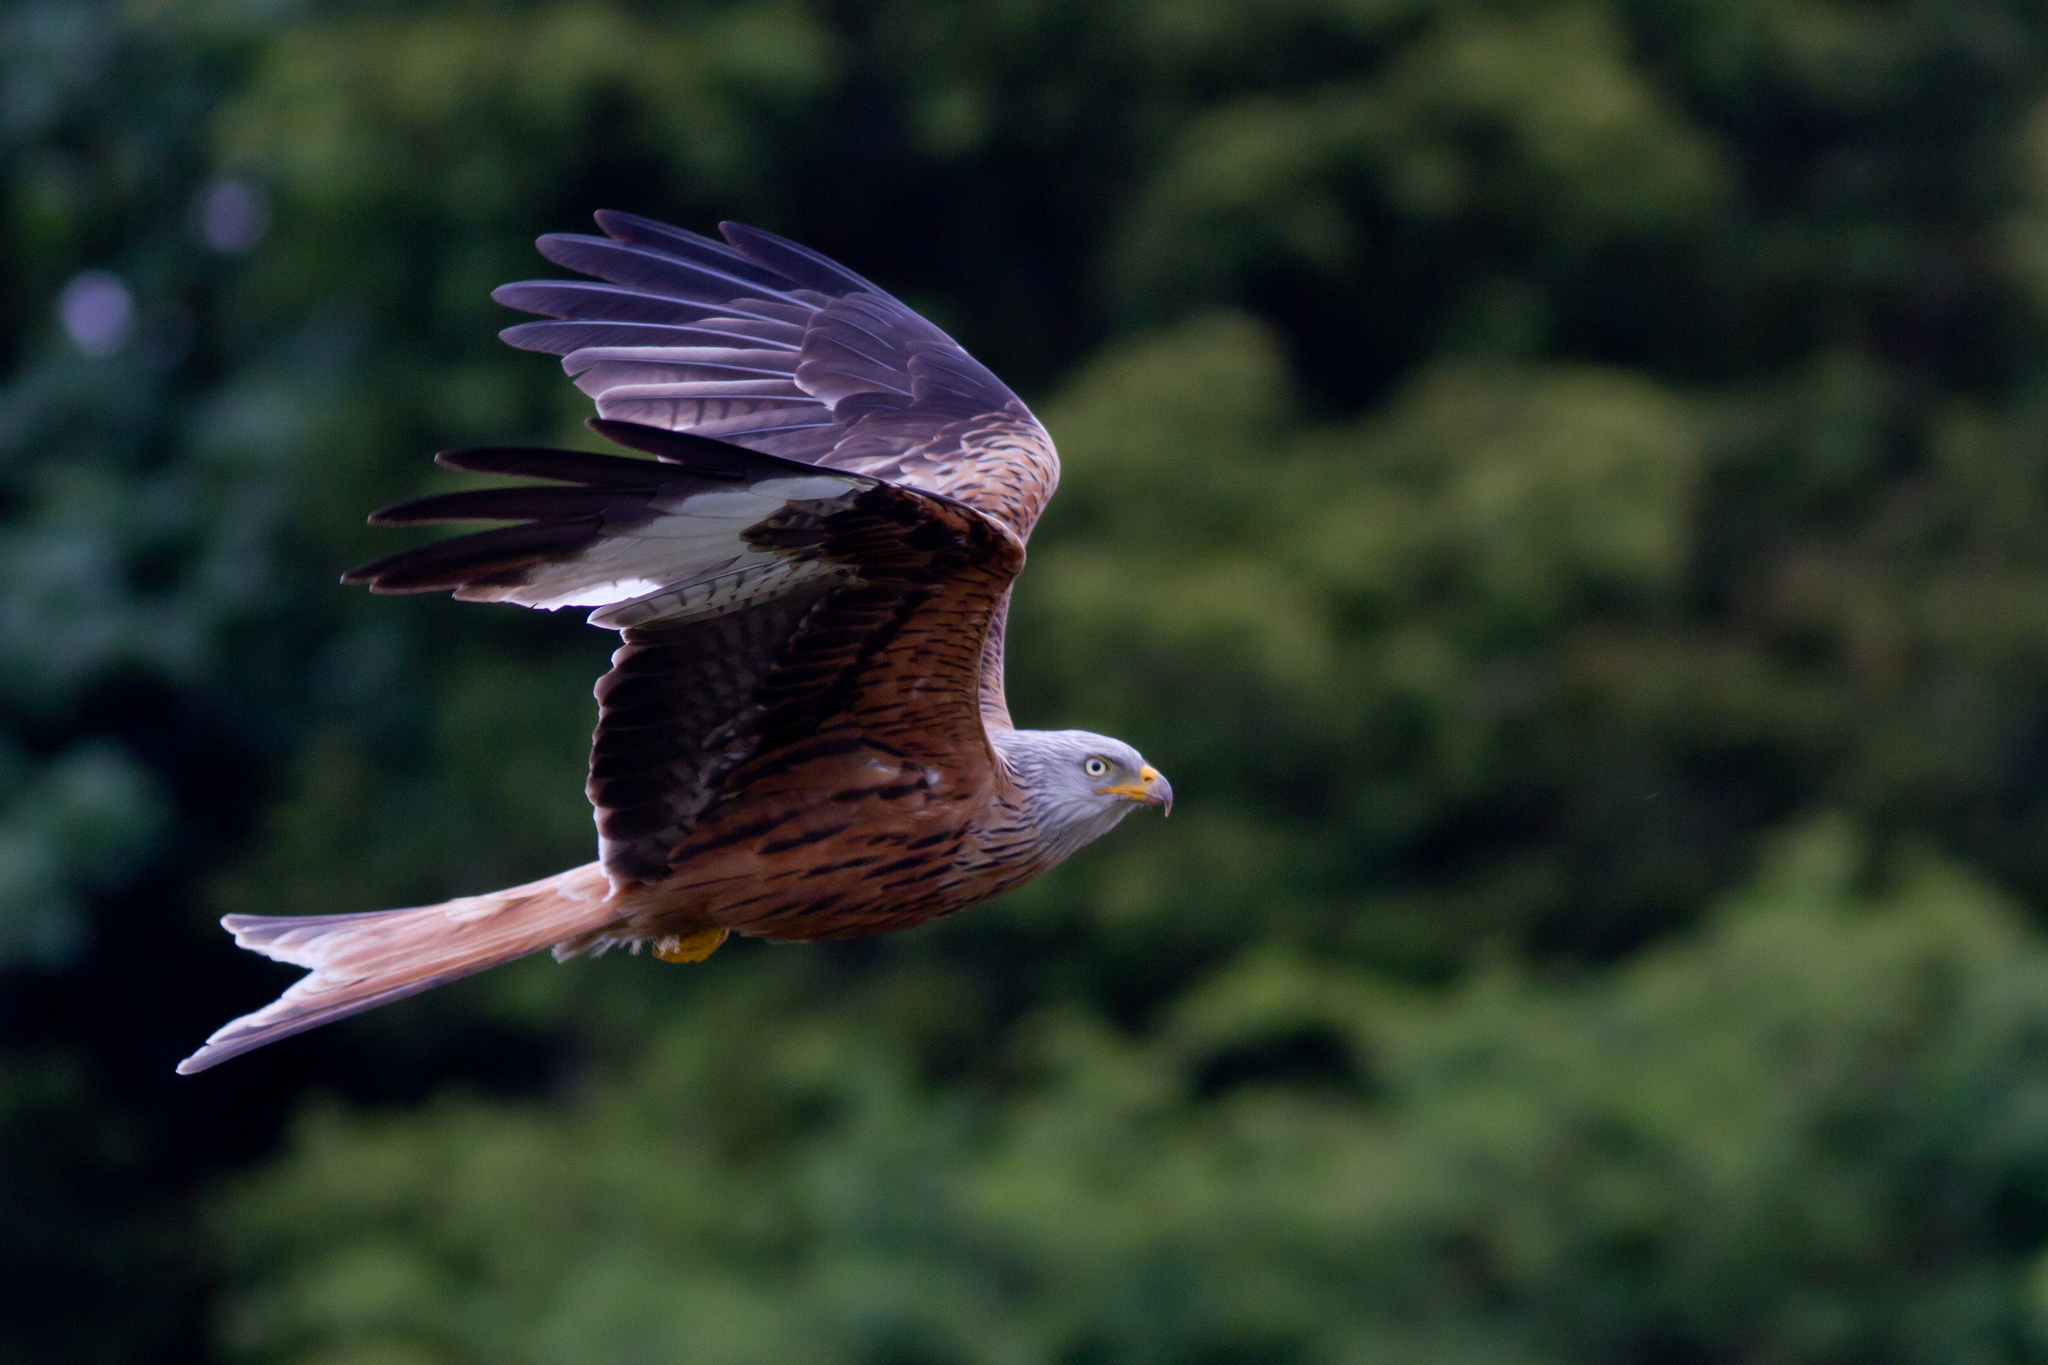 Hawk full hd wallpaper and background image 2048x1365 - Hawk iphone wallpaper ...